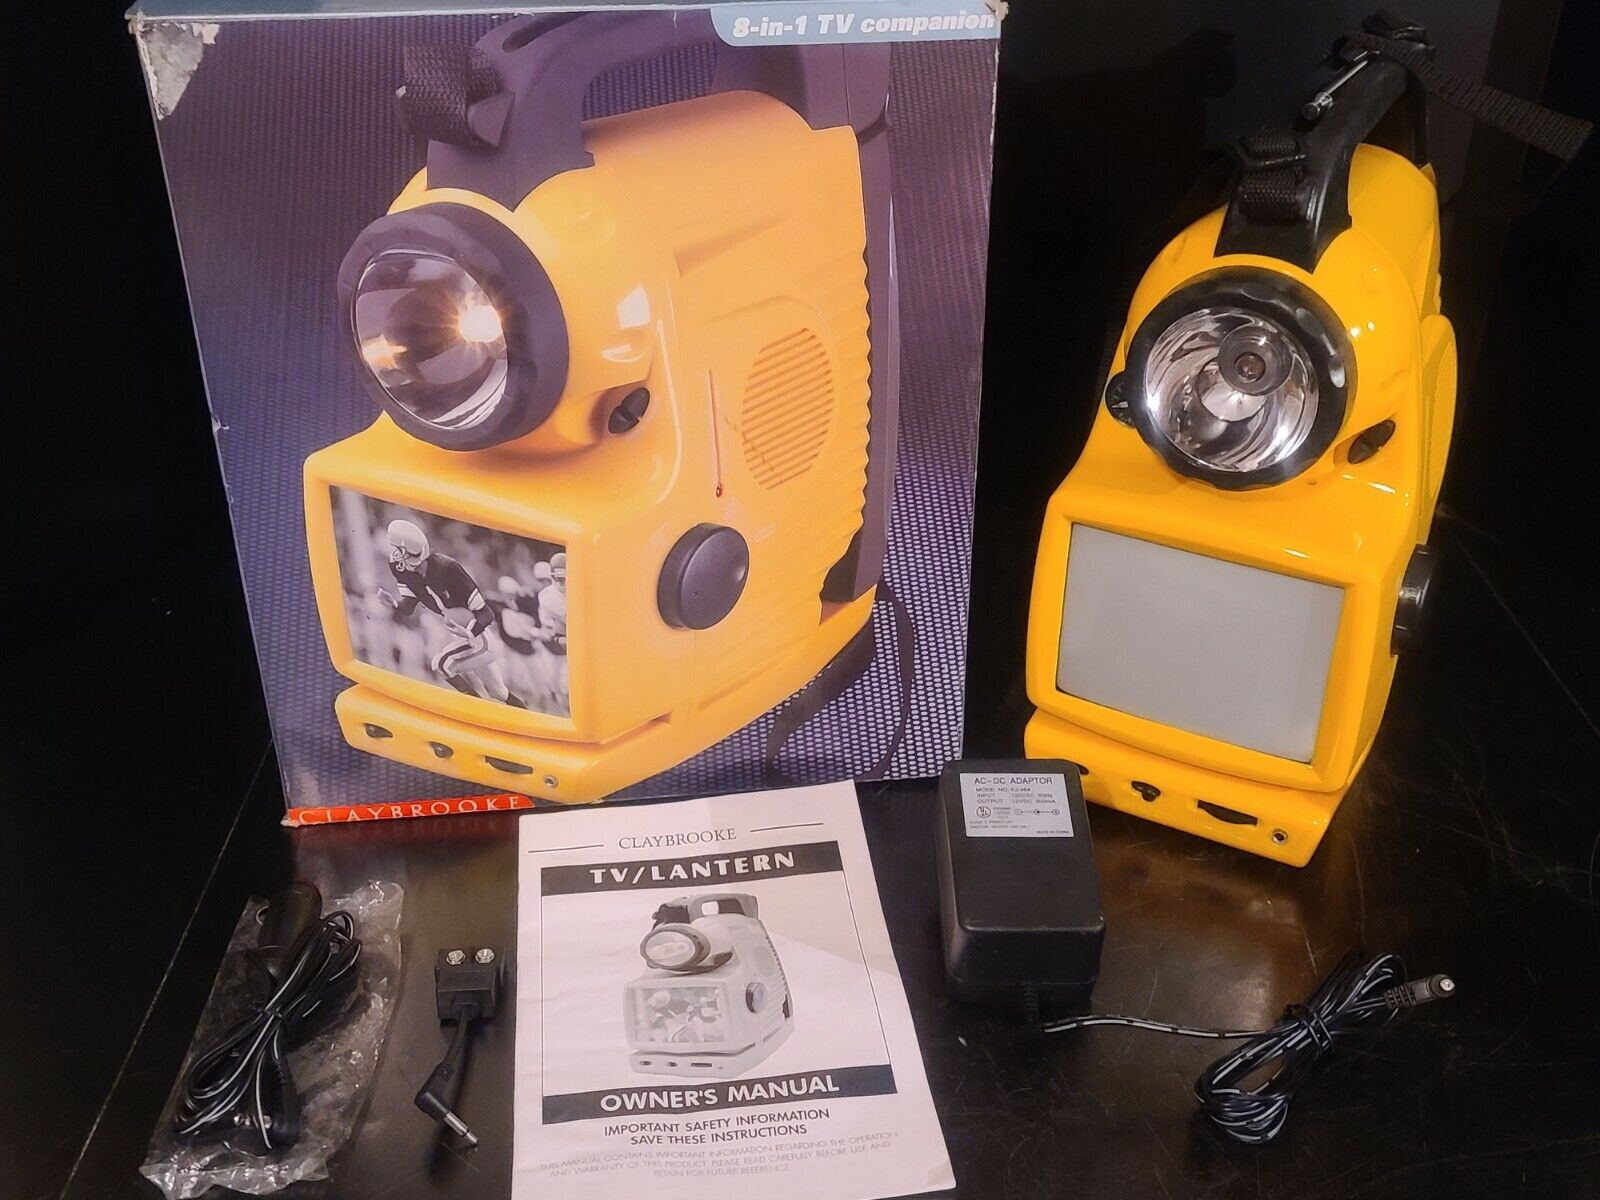 TESTED GOOD CLAYBROOKE PORTABLE 8 IN 1 TV companion hunting